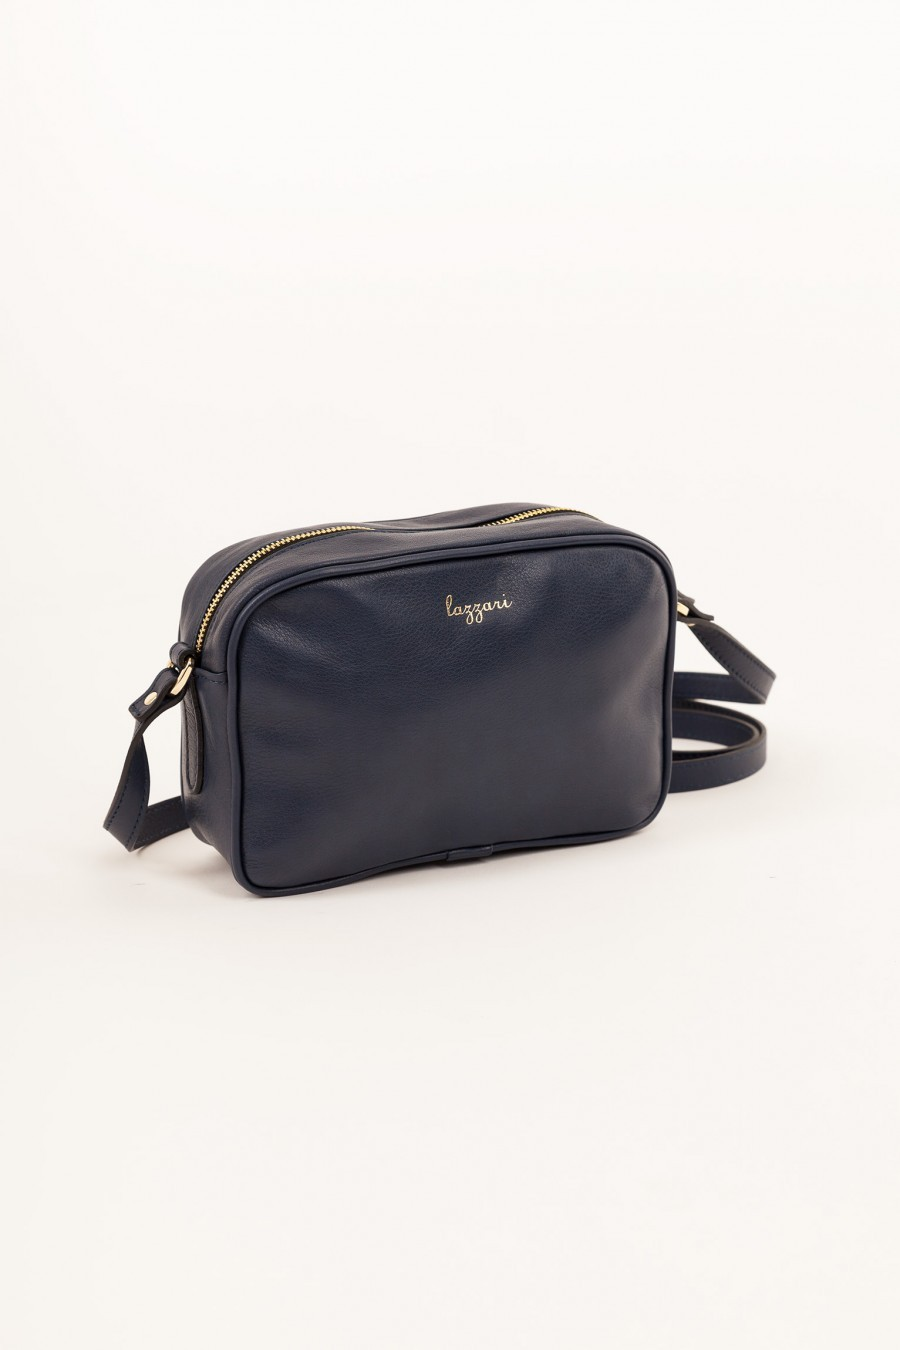 Shoulder bag rectangular blue